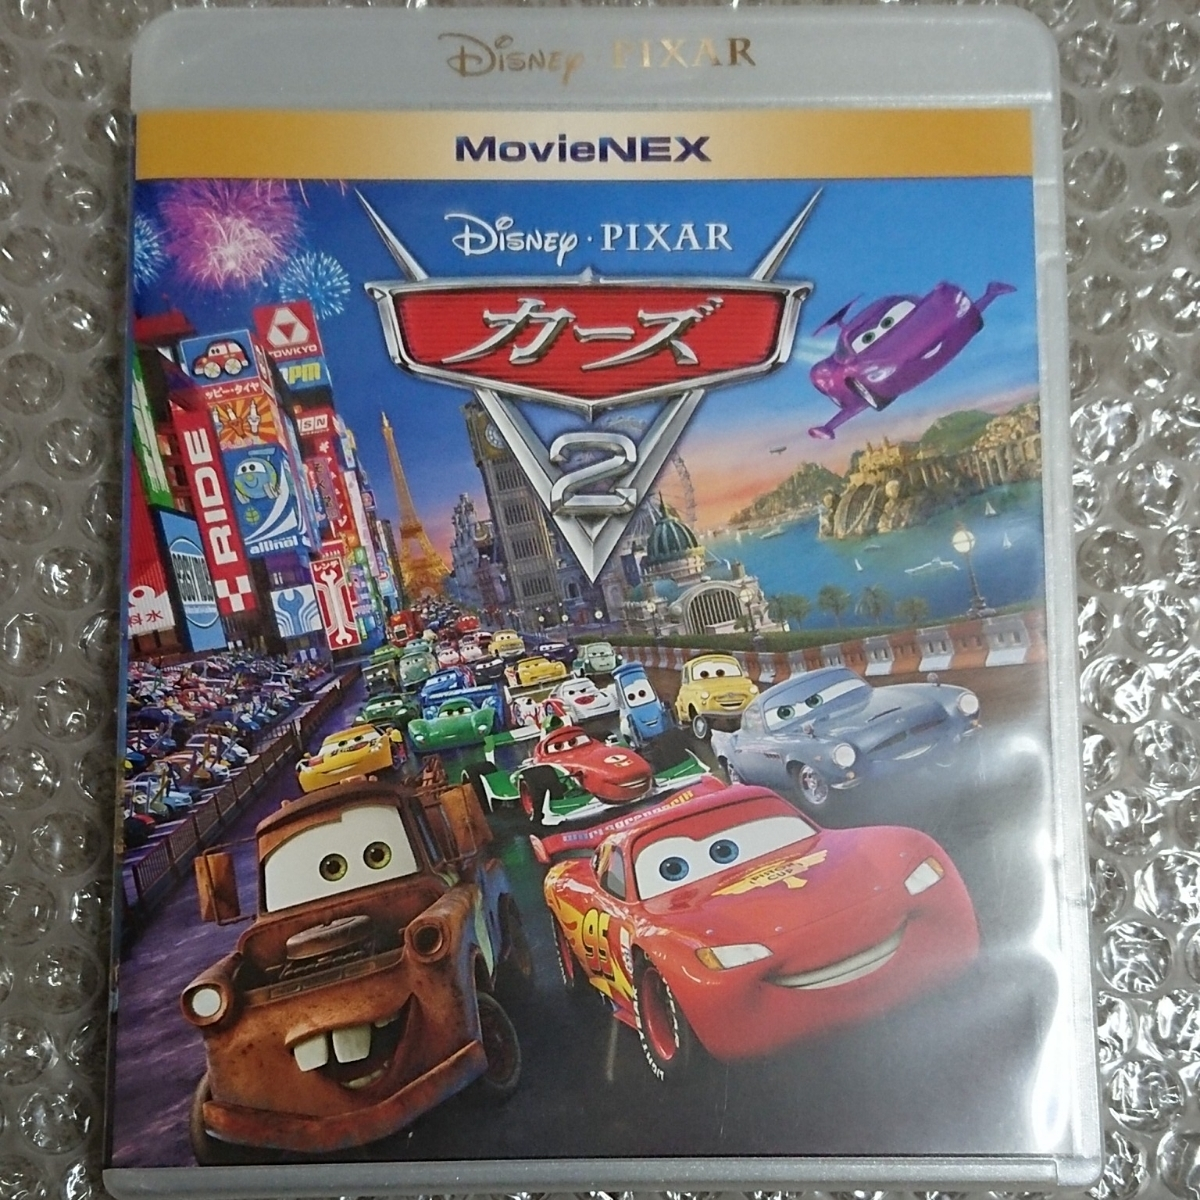 Not Yet Reproduction The Cars 2 Blu Ray Blue Ray Original Case Movienex Disney Piksa Postage 180 Jpy Dvd Less Real Yahoo Auction Salling